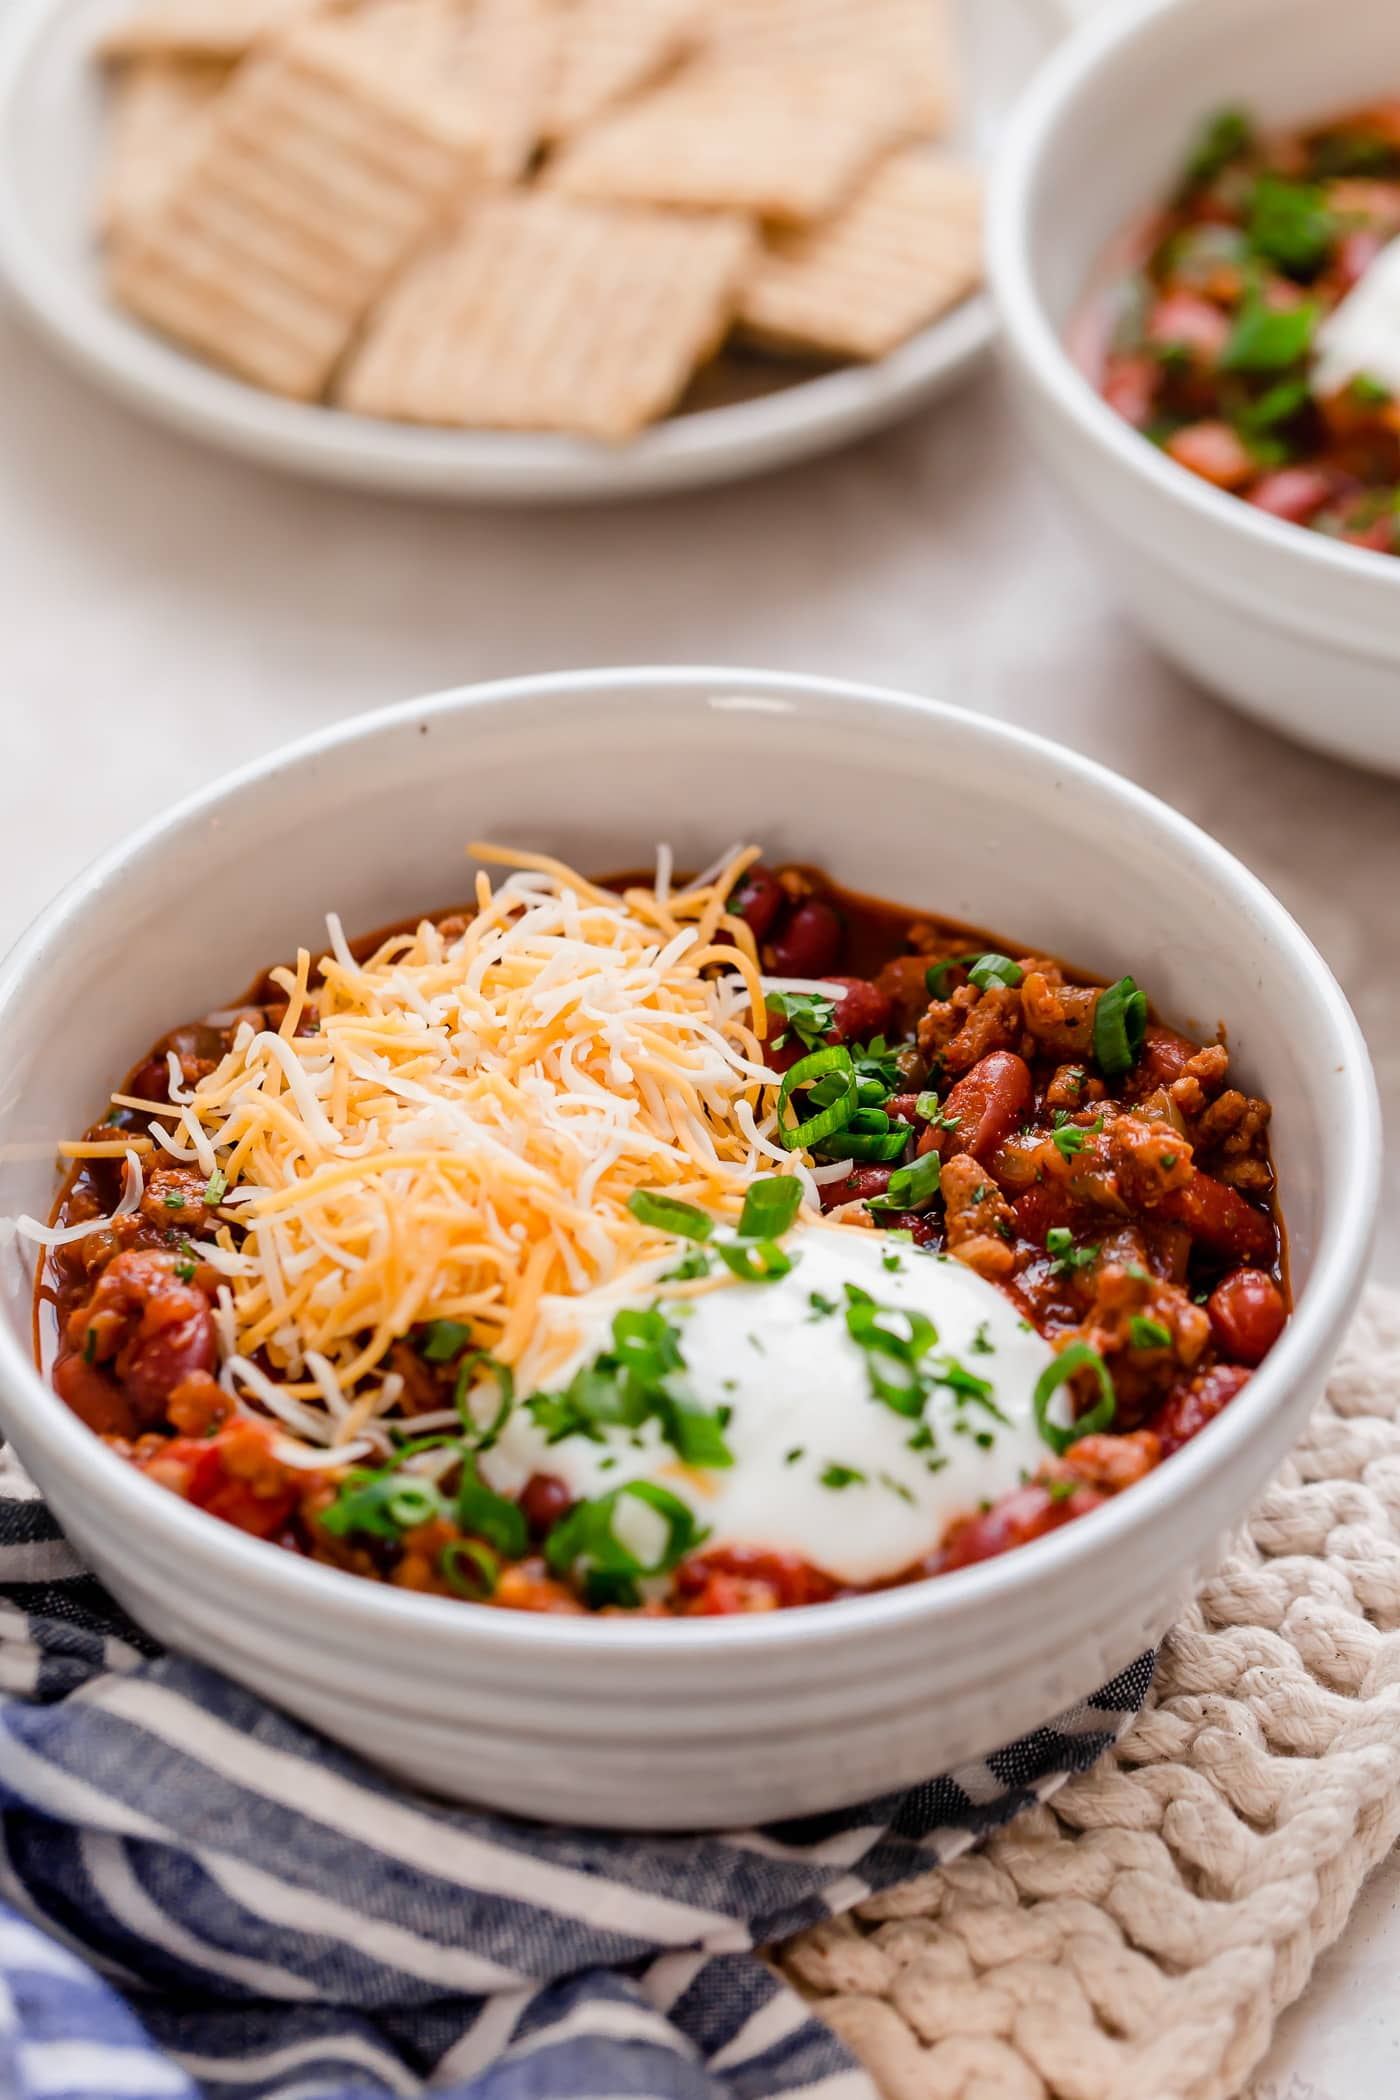 Turkey chili in a white serving bowl.